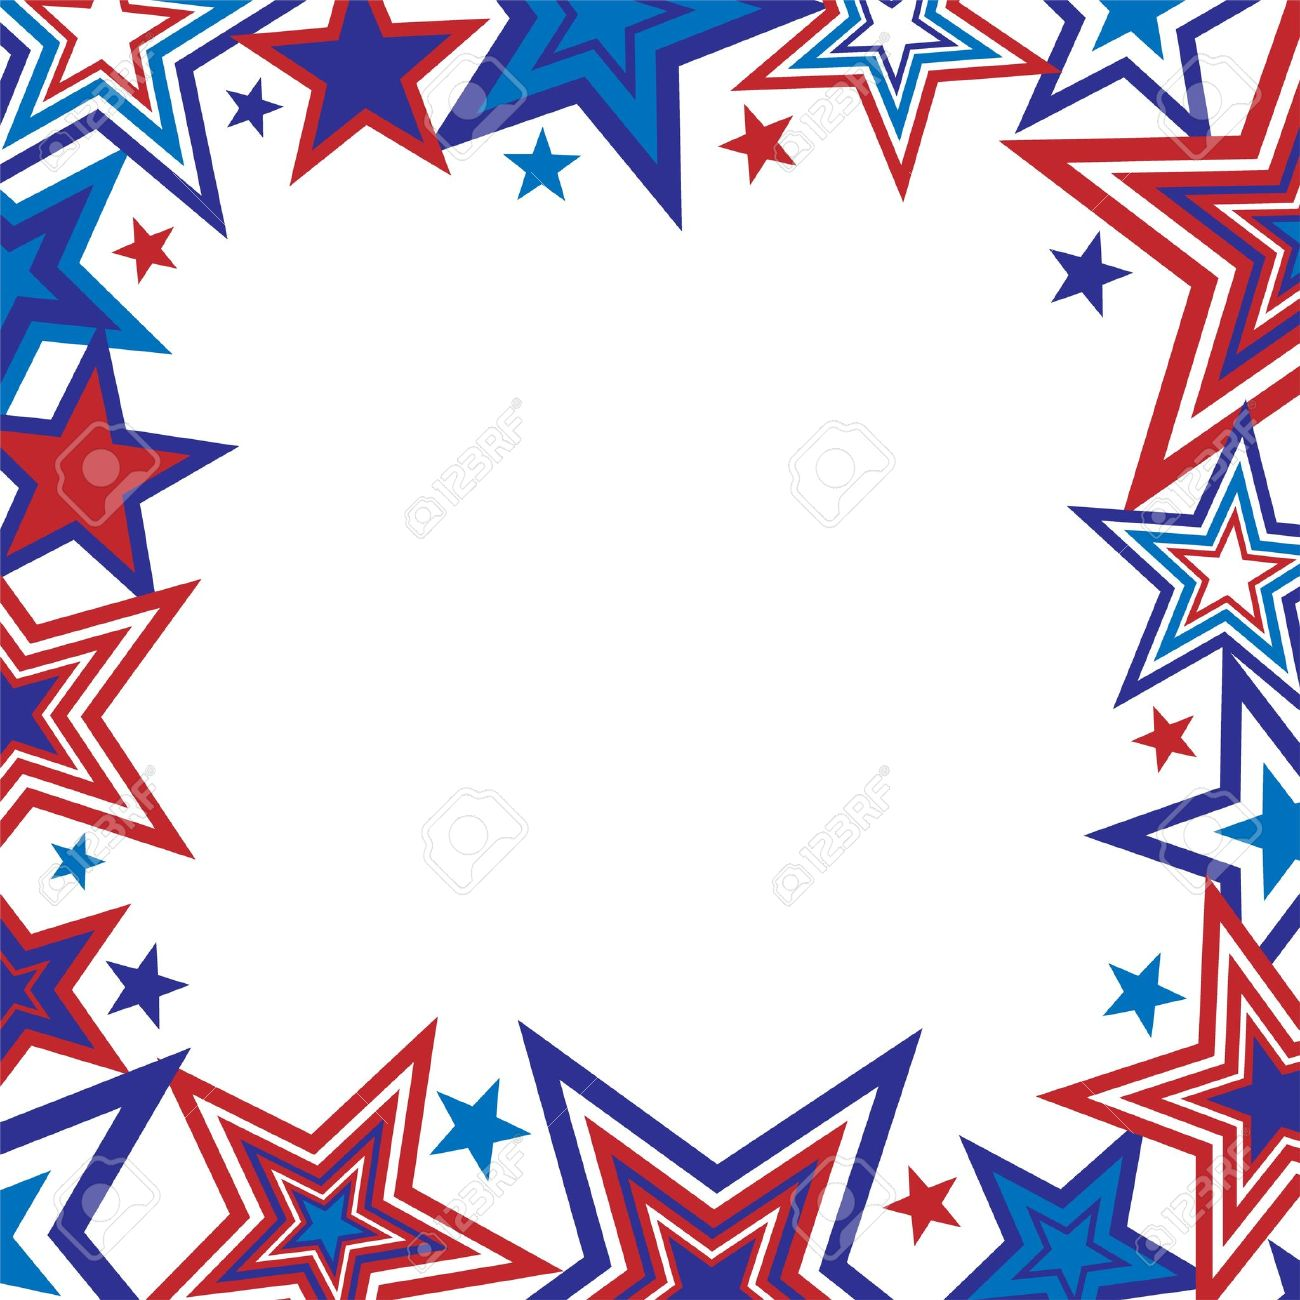 1300x1300 Red White And Blue Star Border Clip Art